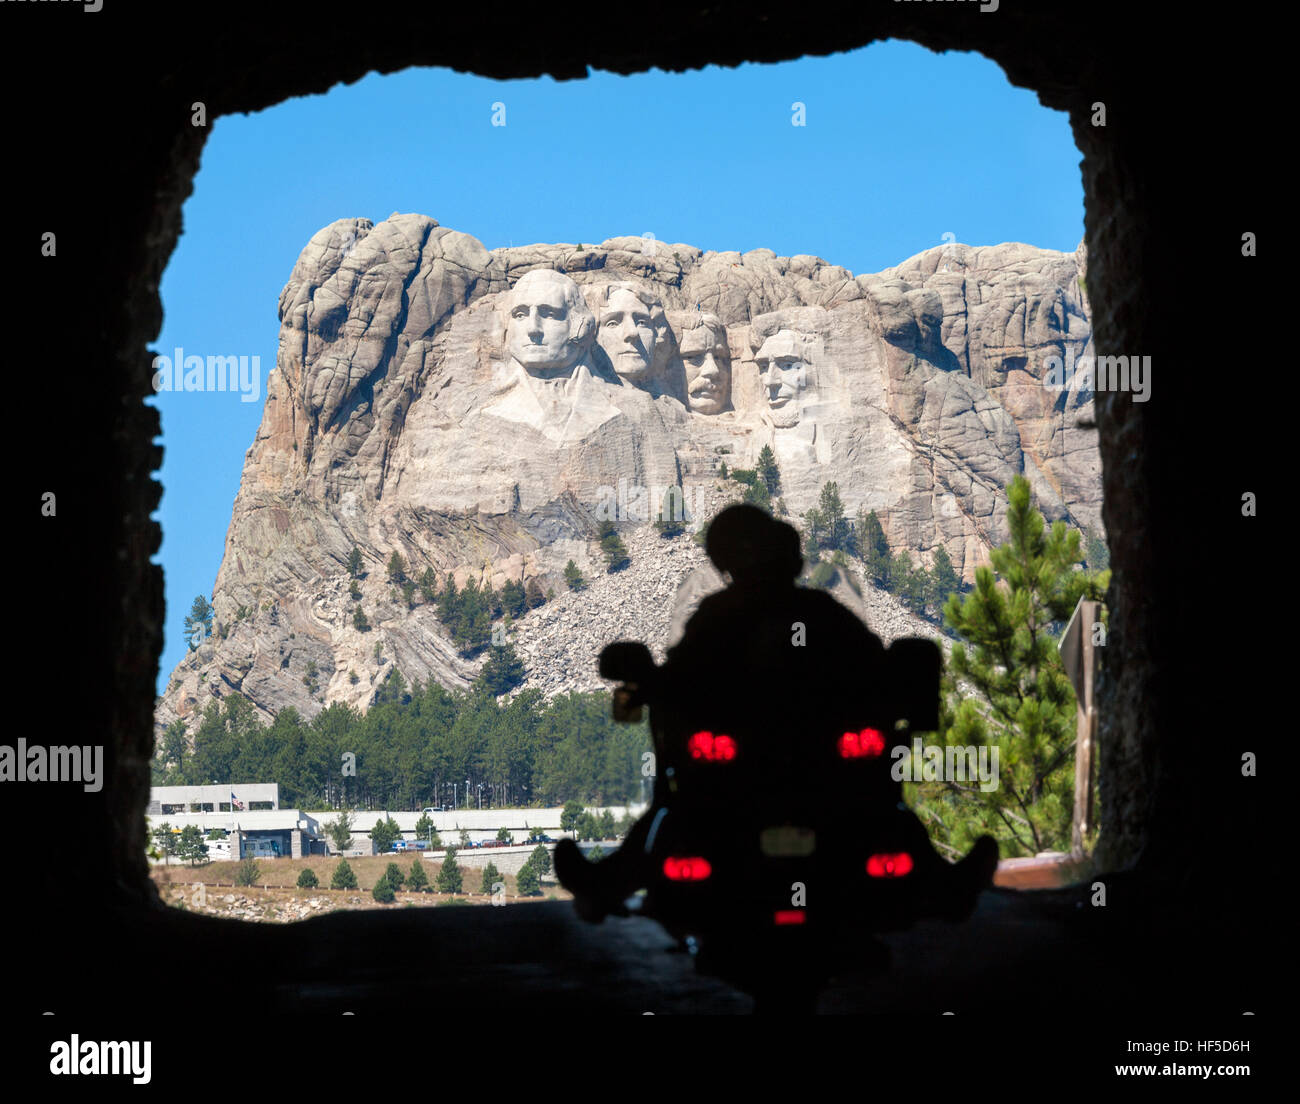 Mount Rushmore. A motorcycle riding through a tunnel on US-16A Scenic Byway towards Mount Rushmore National Memorial - Stock Image